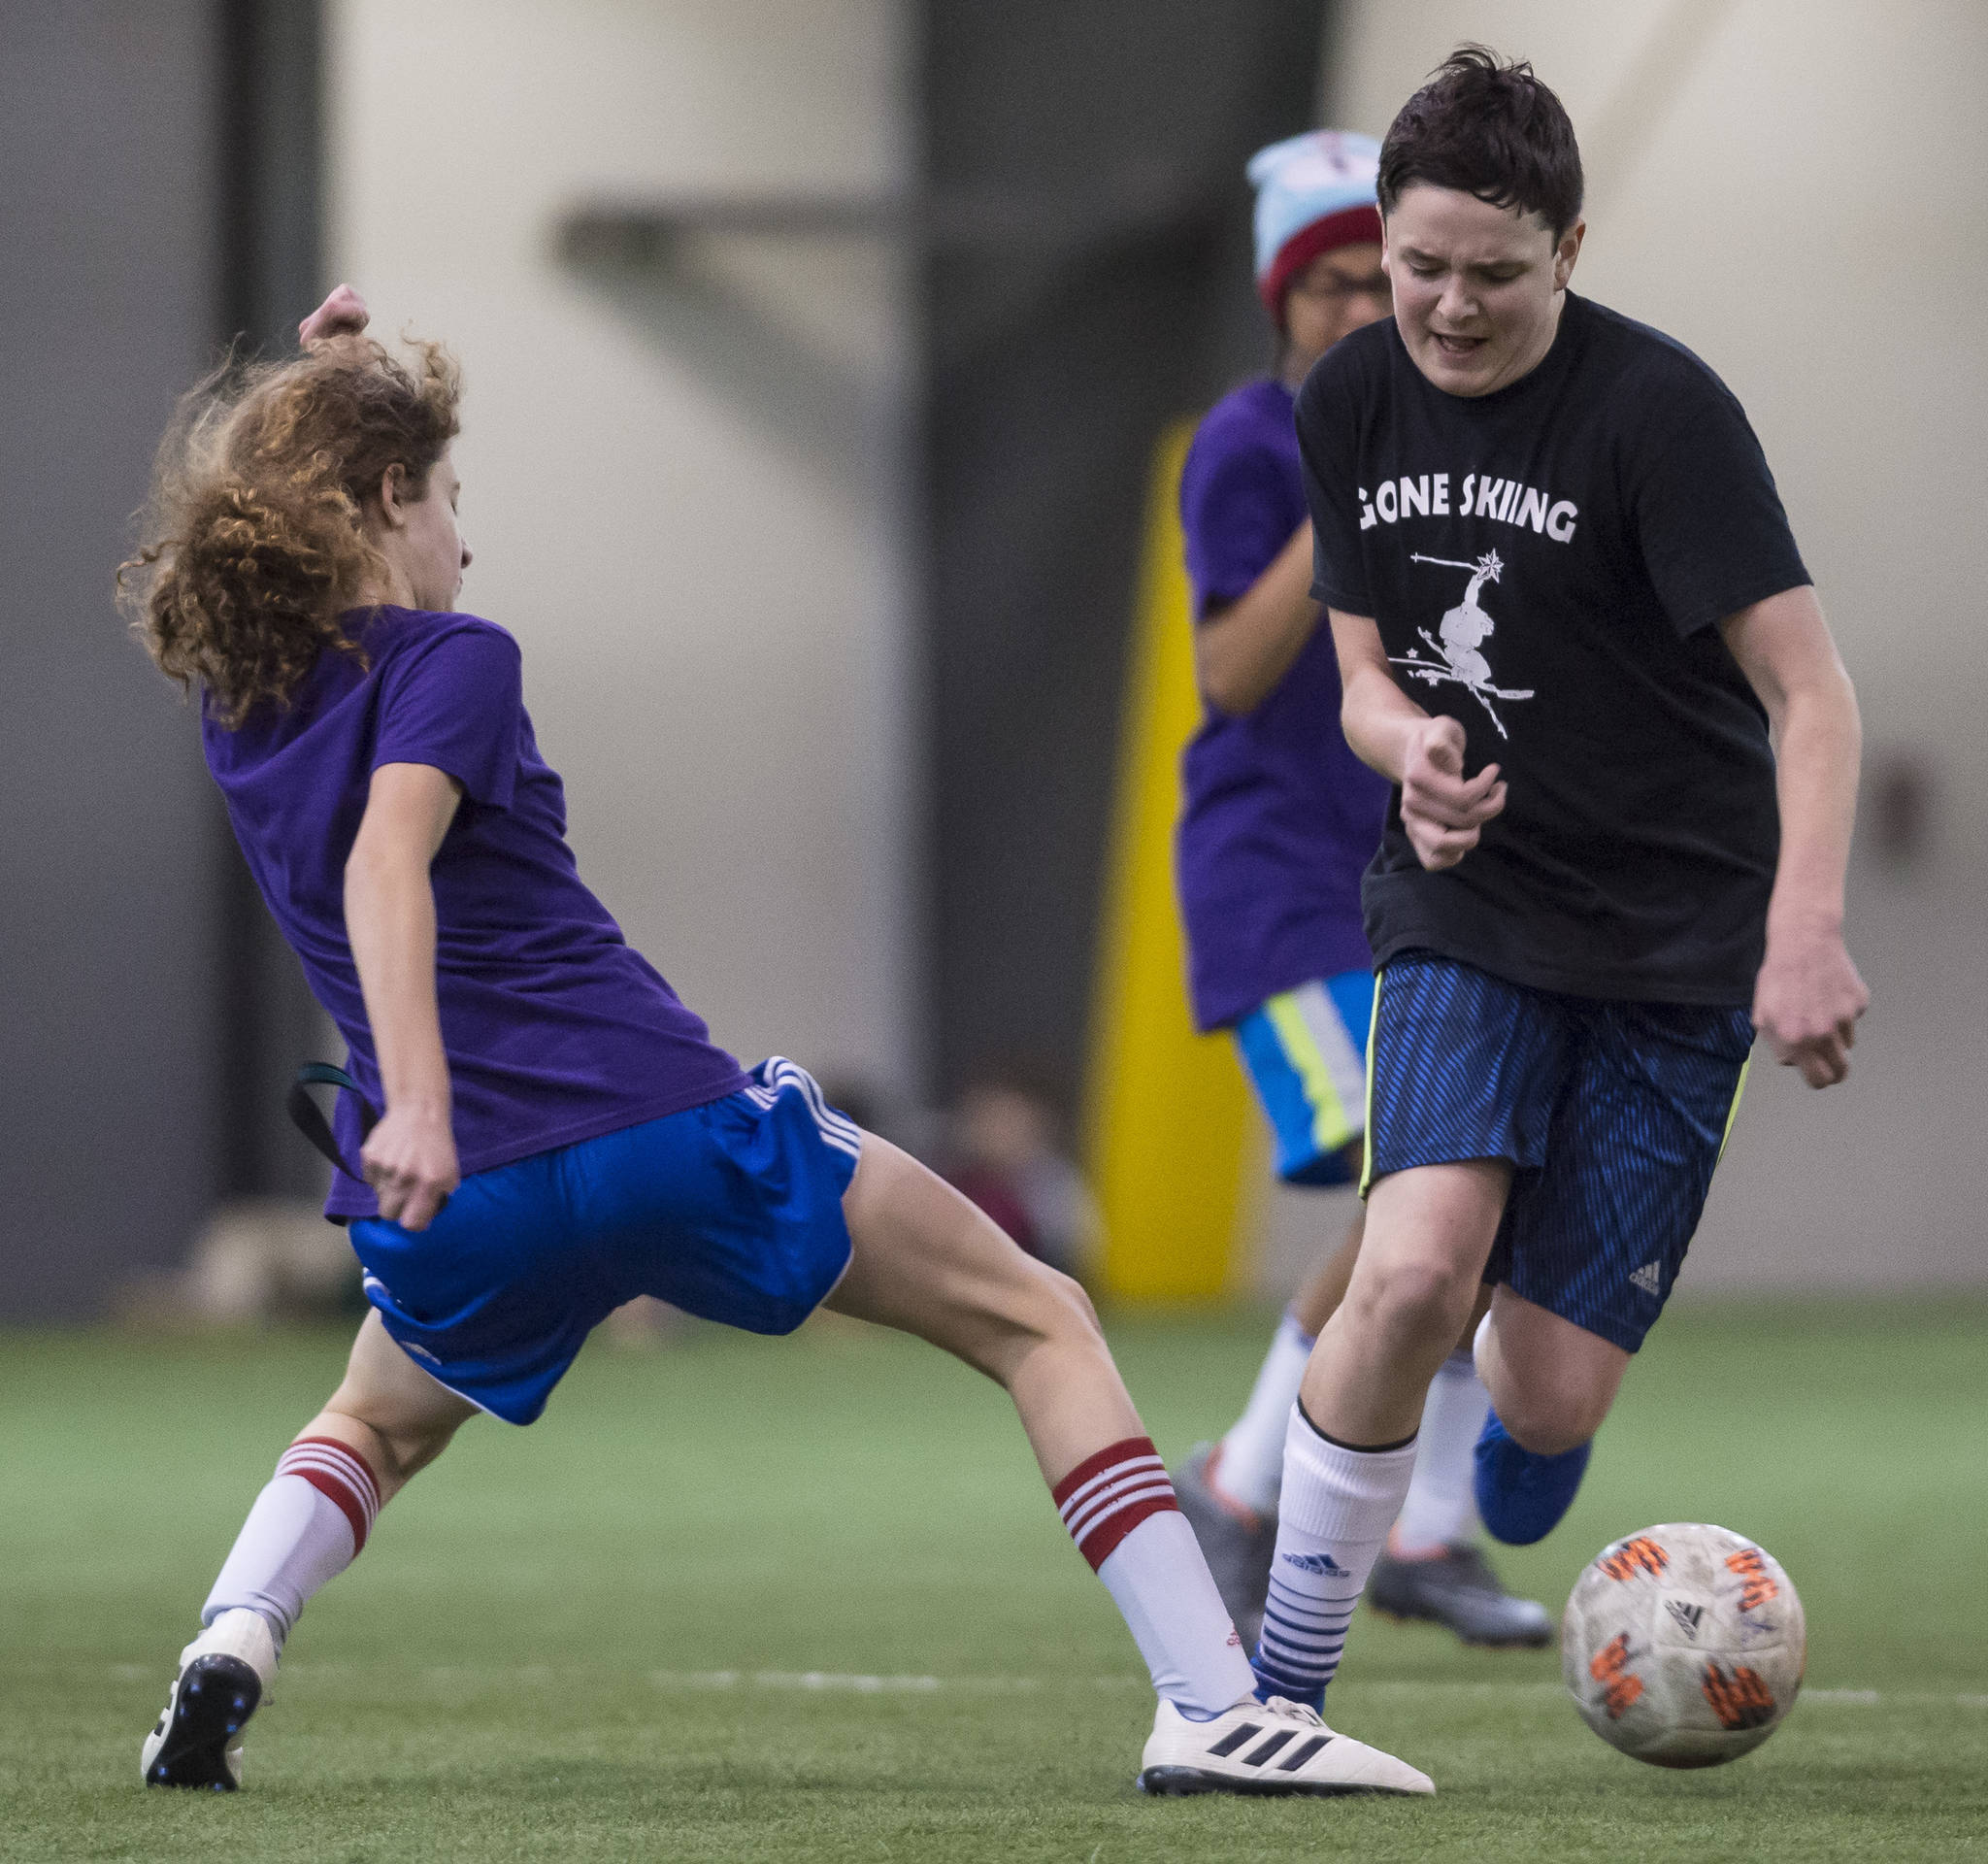 Grumpsicles play against Gone Skiing at the annual Holiday Cup Soccer Tournament at the Wells Fargo Dimond Park Field House on Wednesday, Dec. 26, 2018. (Michael Penn | Juneau Empire)